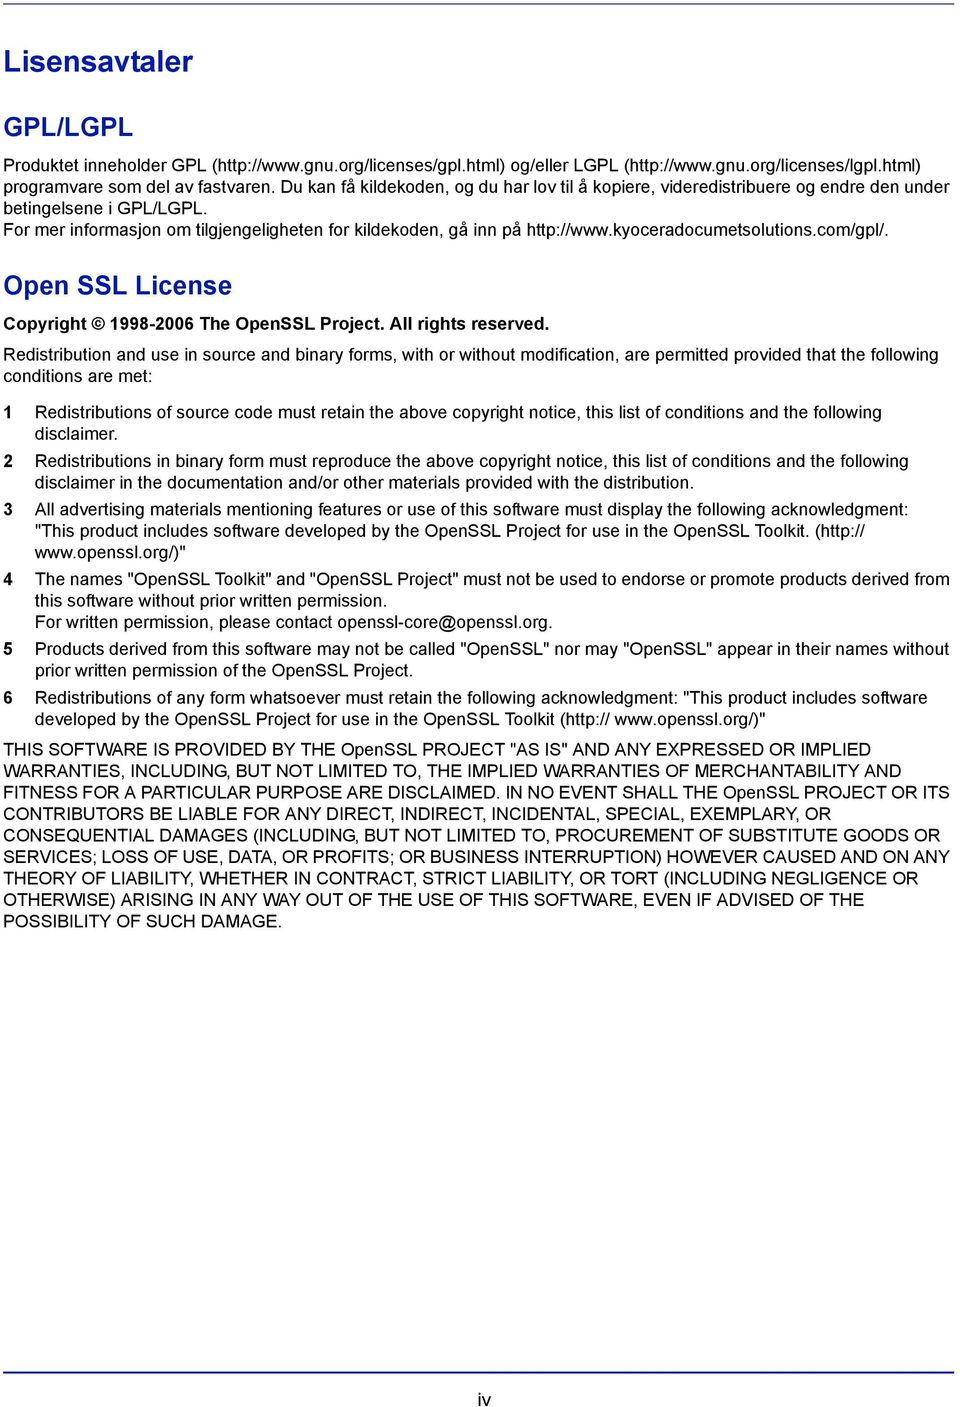 kyoceradocumetsolutions.com/gpl/. Open SSL License Copyright 1998-2006 The OpenSSL Project. All rights reserved.